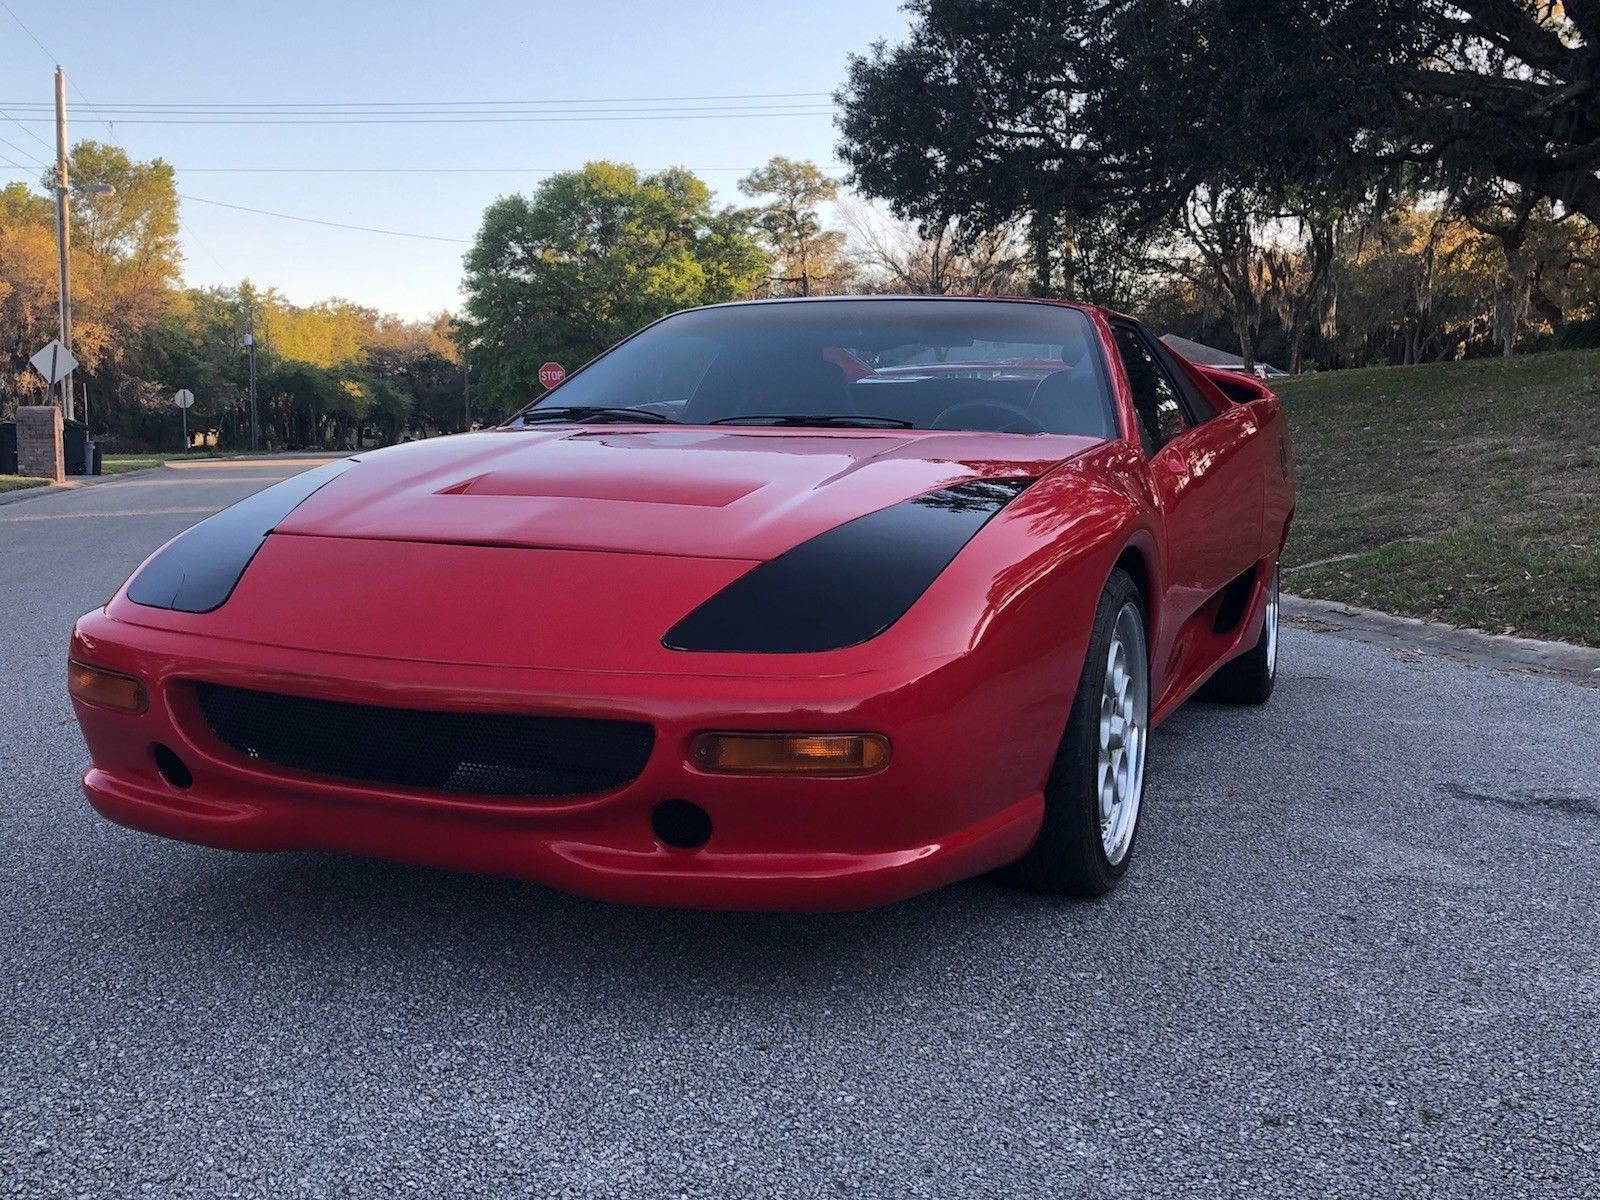 inspired by 1987 ferrari  lamborghini replica for sale 1986 Pontiac Fiero 2012 Pontiac Fiero